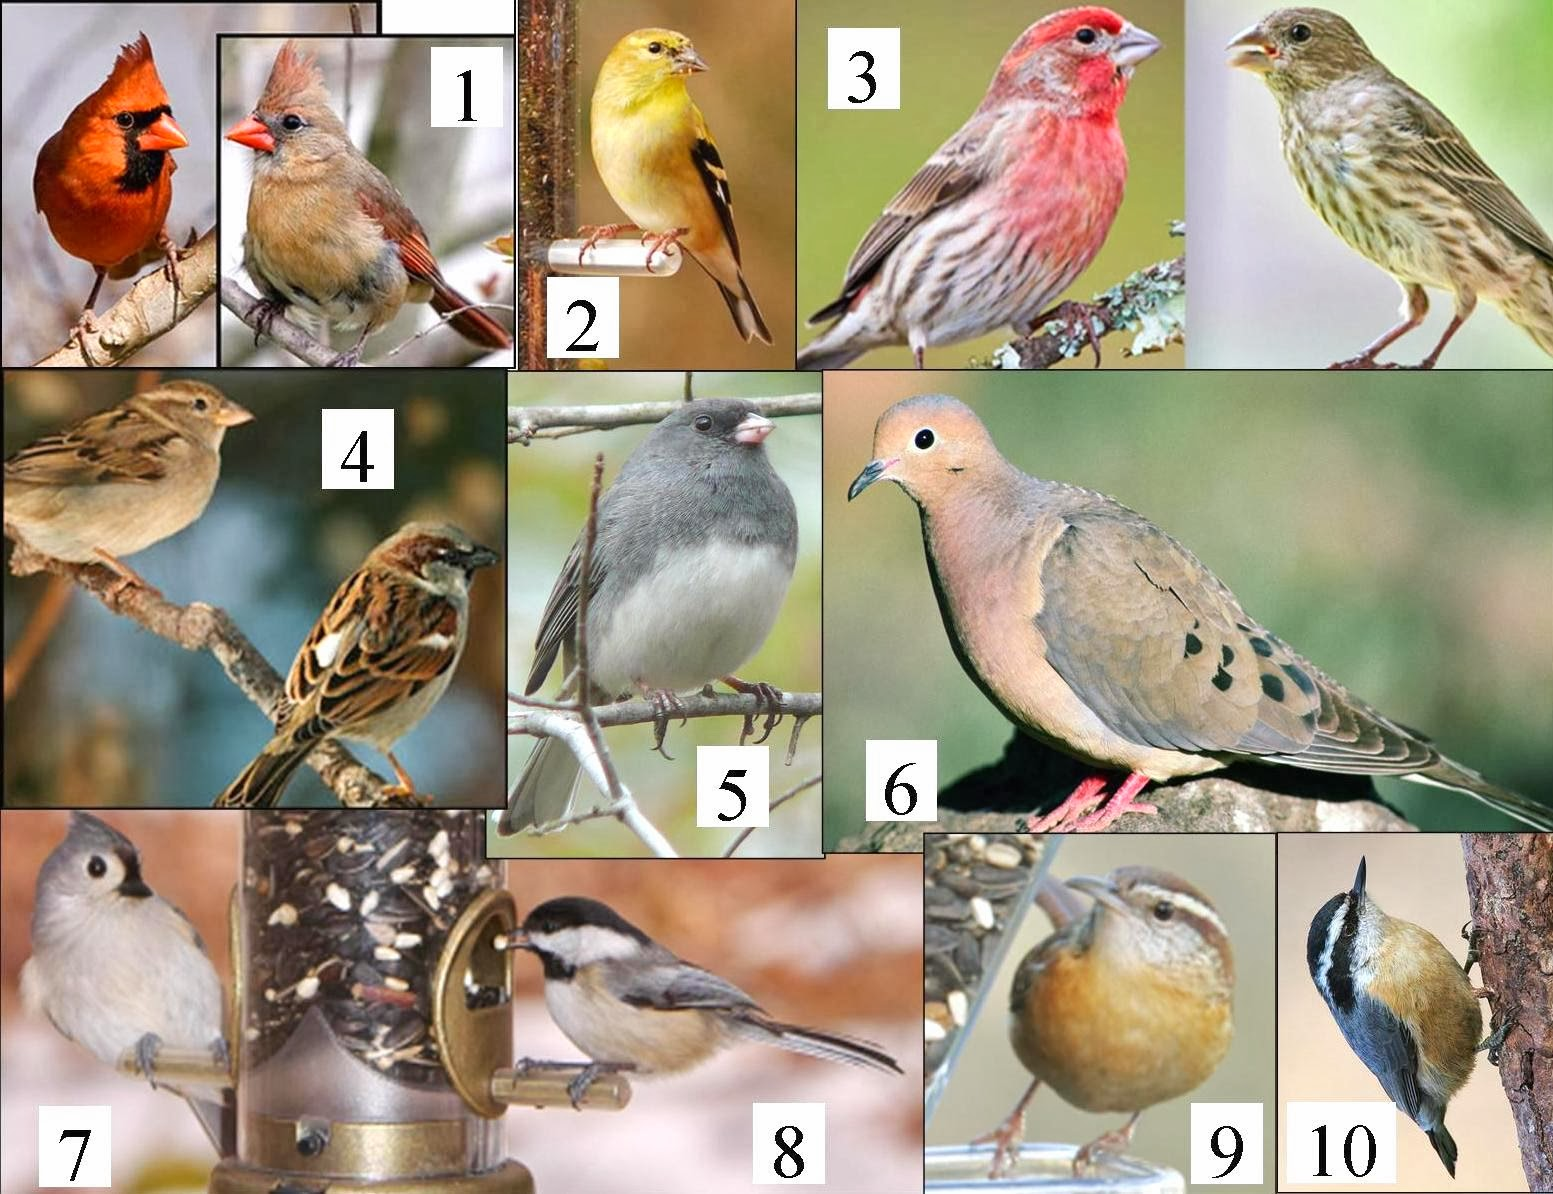 Wild Birds Unlimited: Common Michigan birds I can see at ...